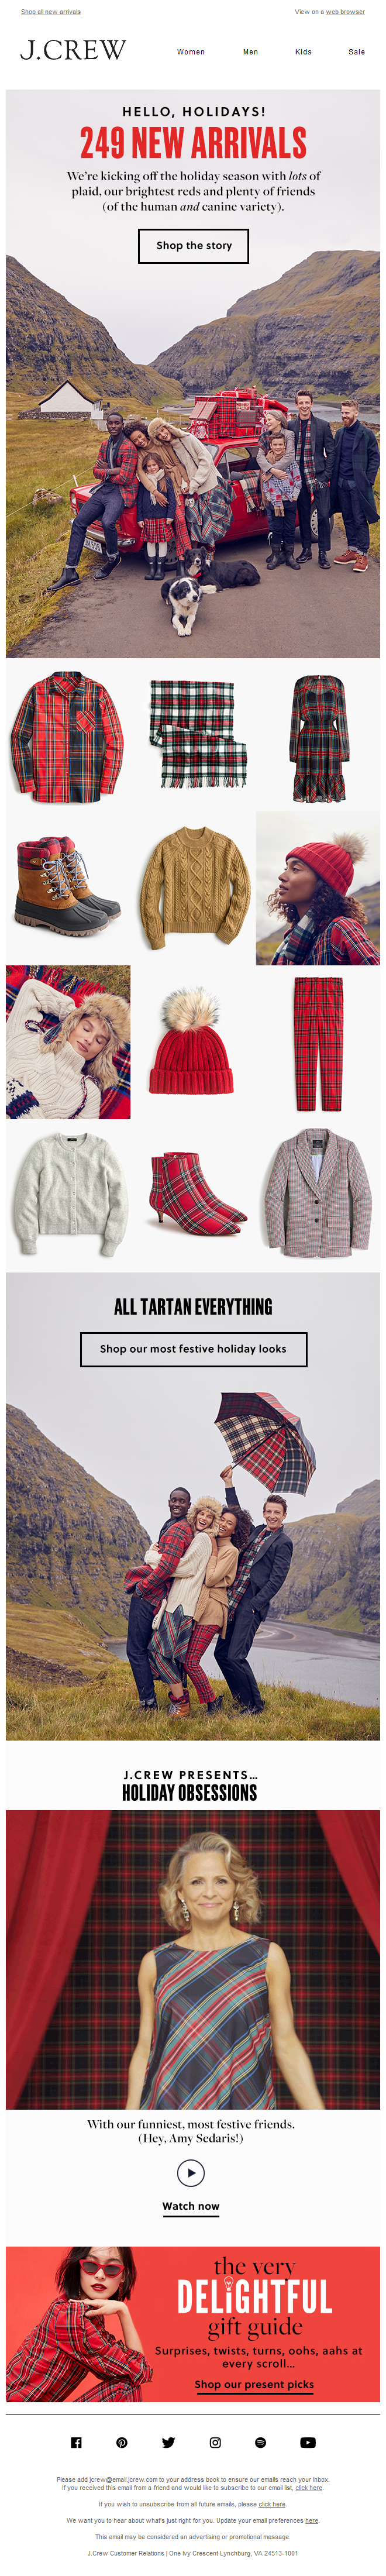 Hello, holidays! 249 NEW ARRIVALS just landed…